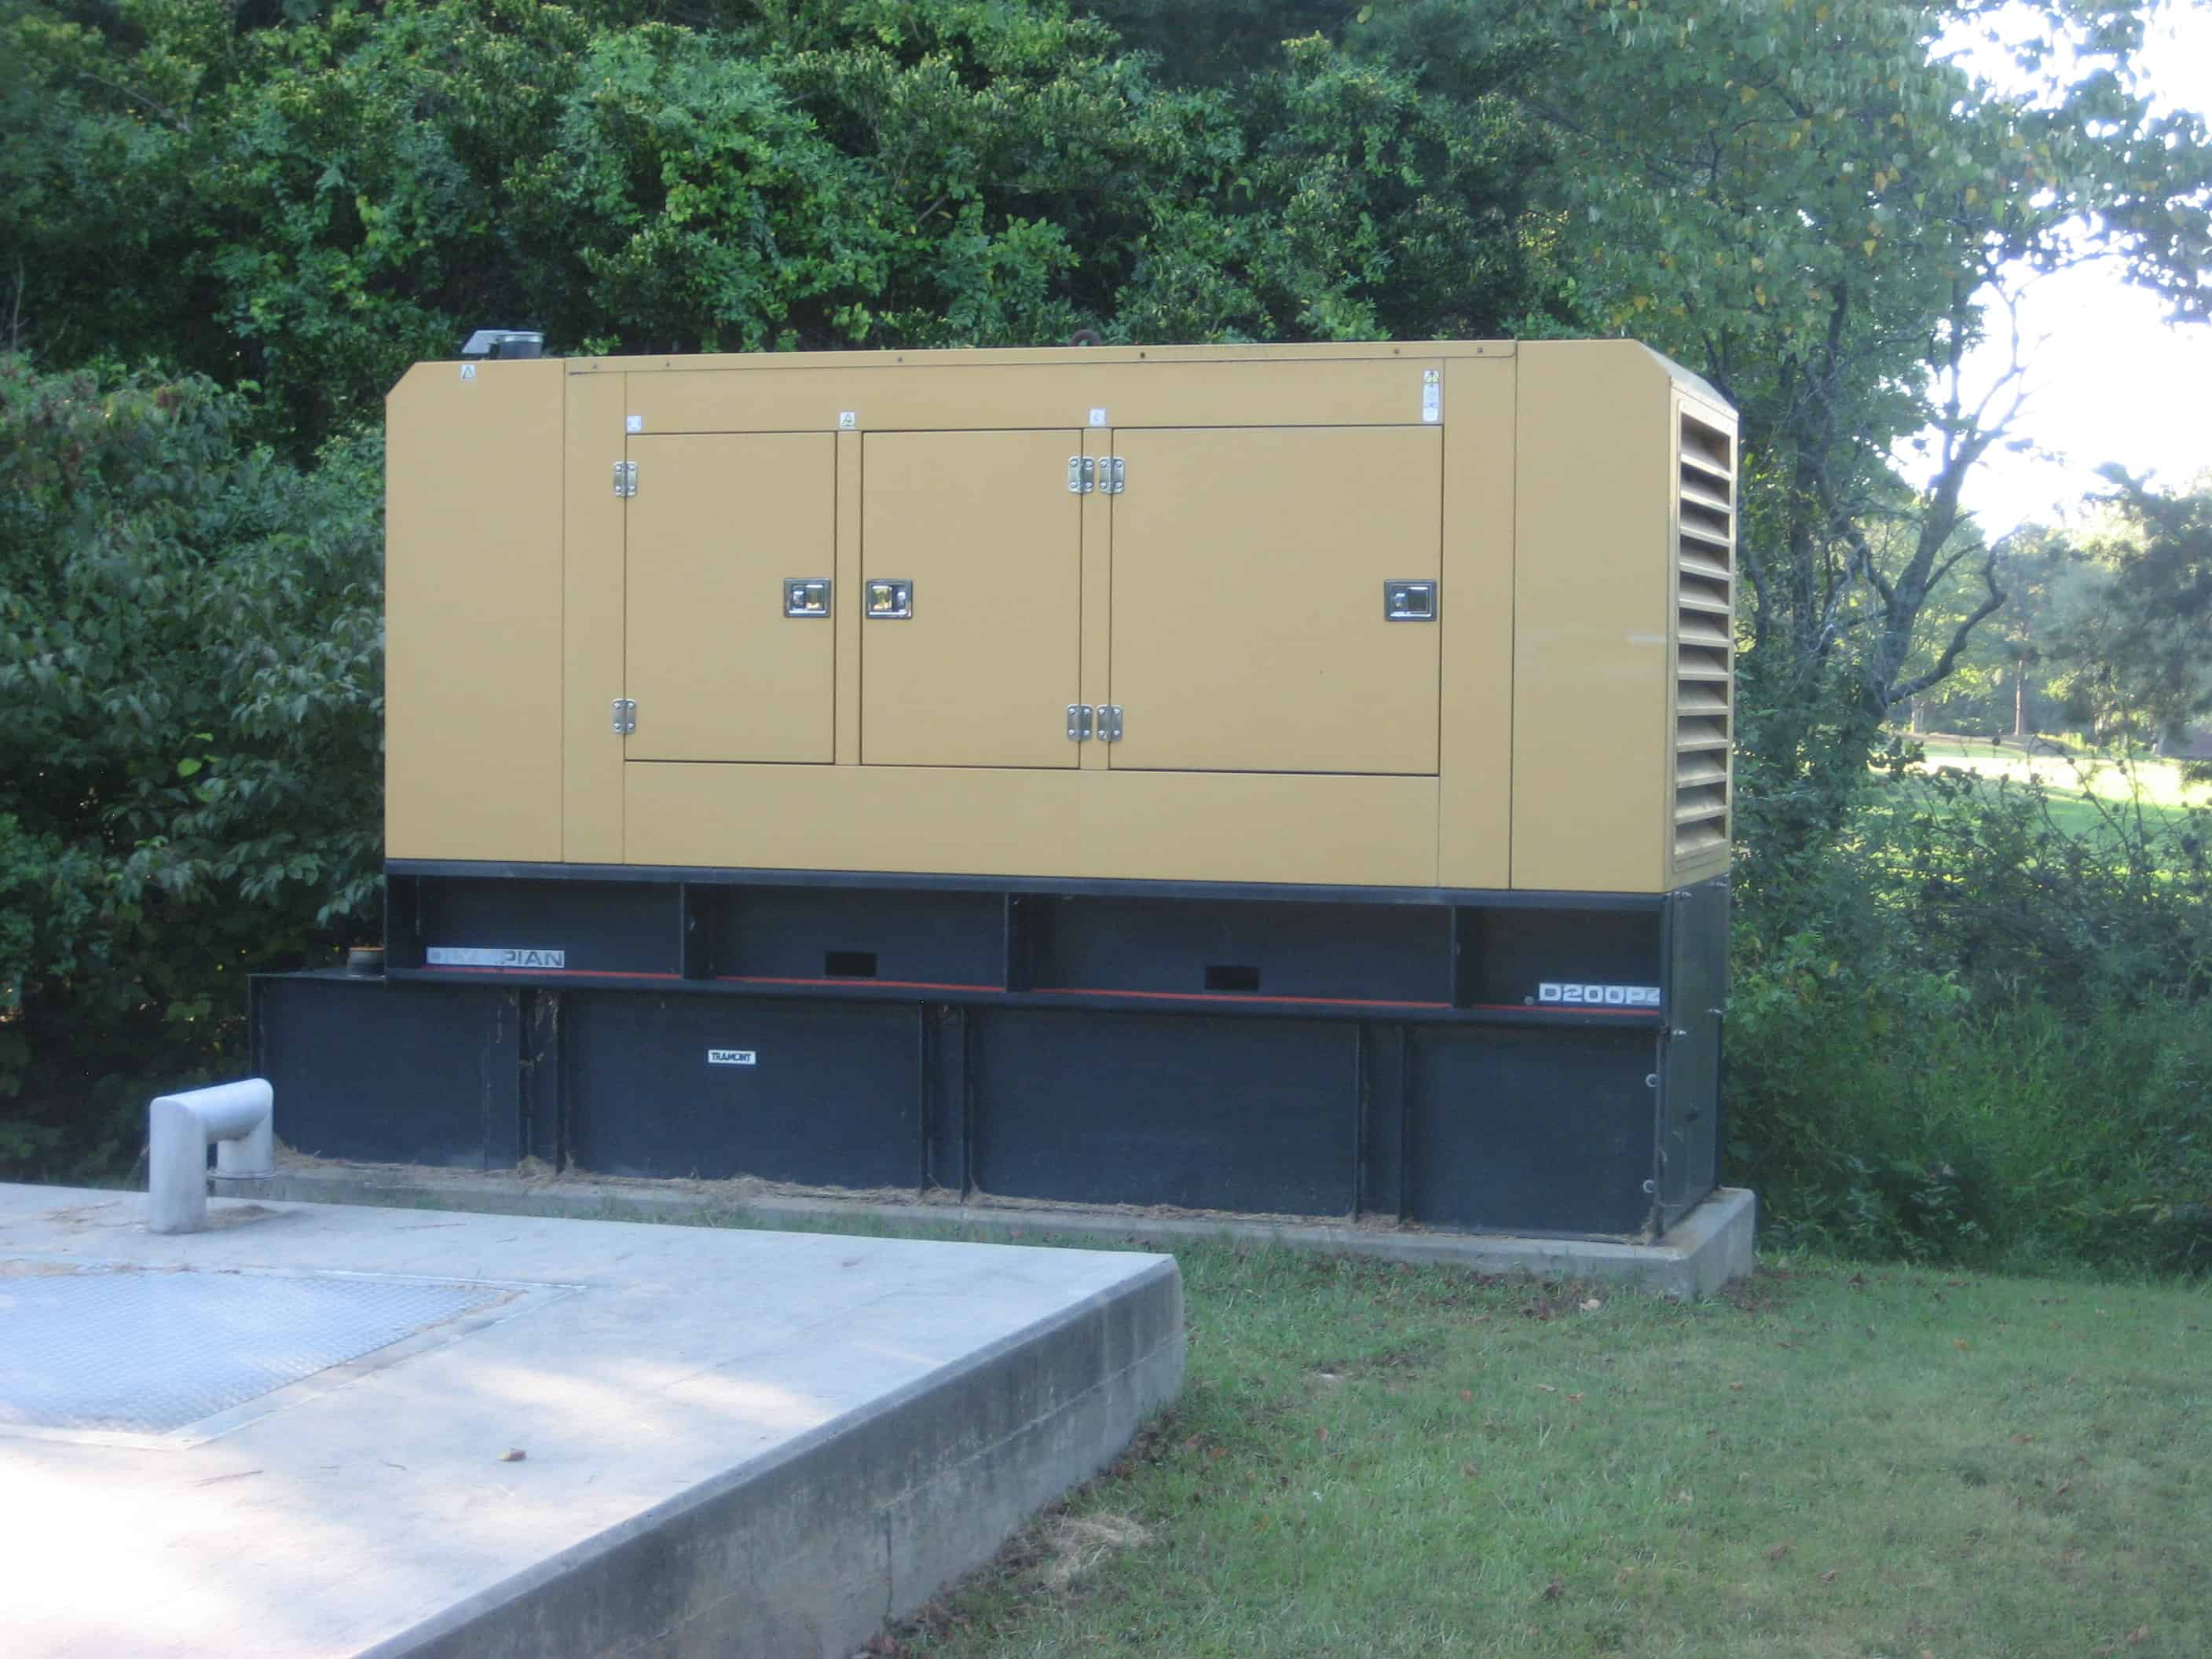 standby generator installation in Pennsylvania by McHale's